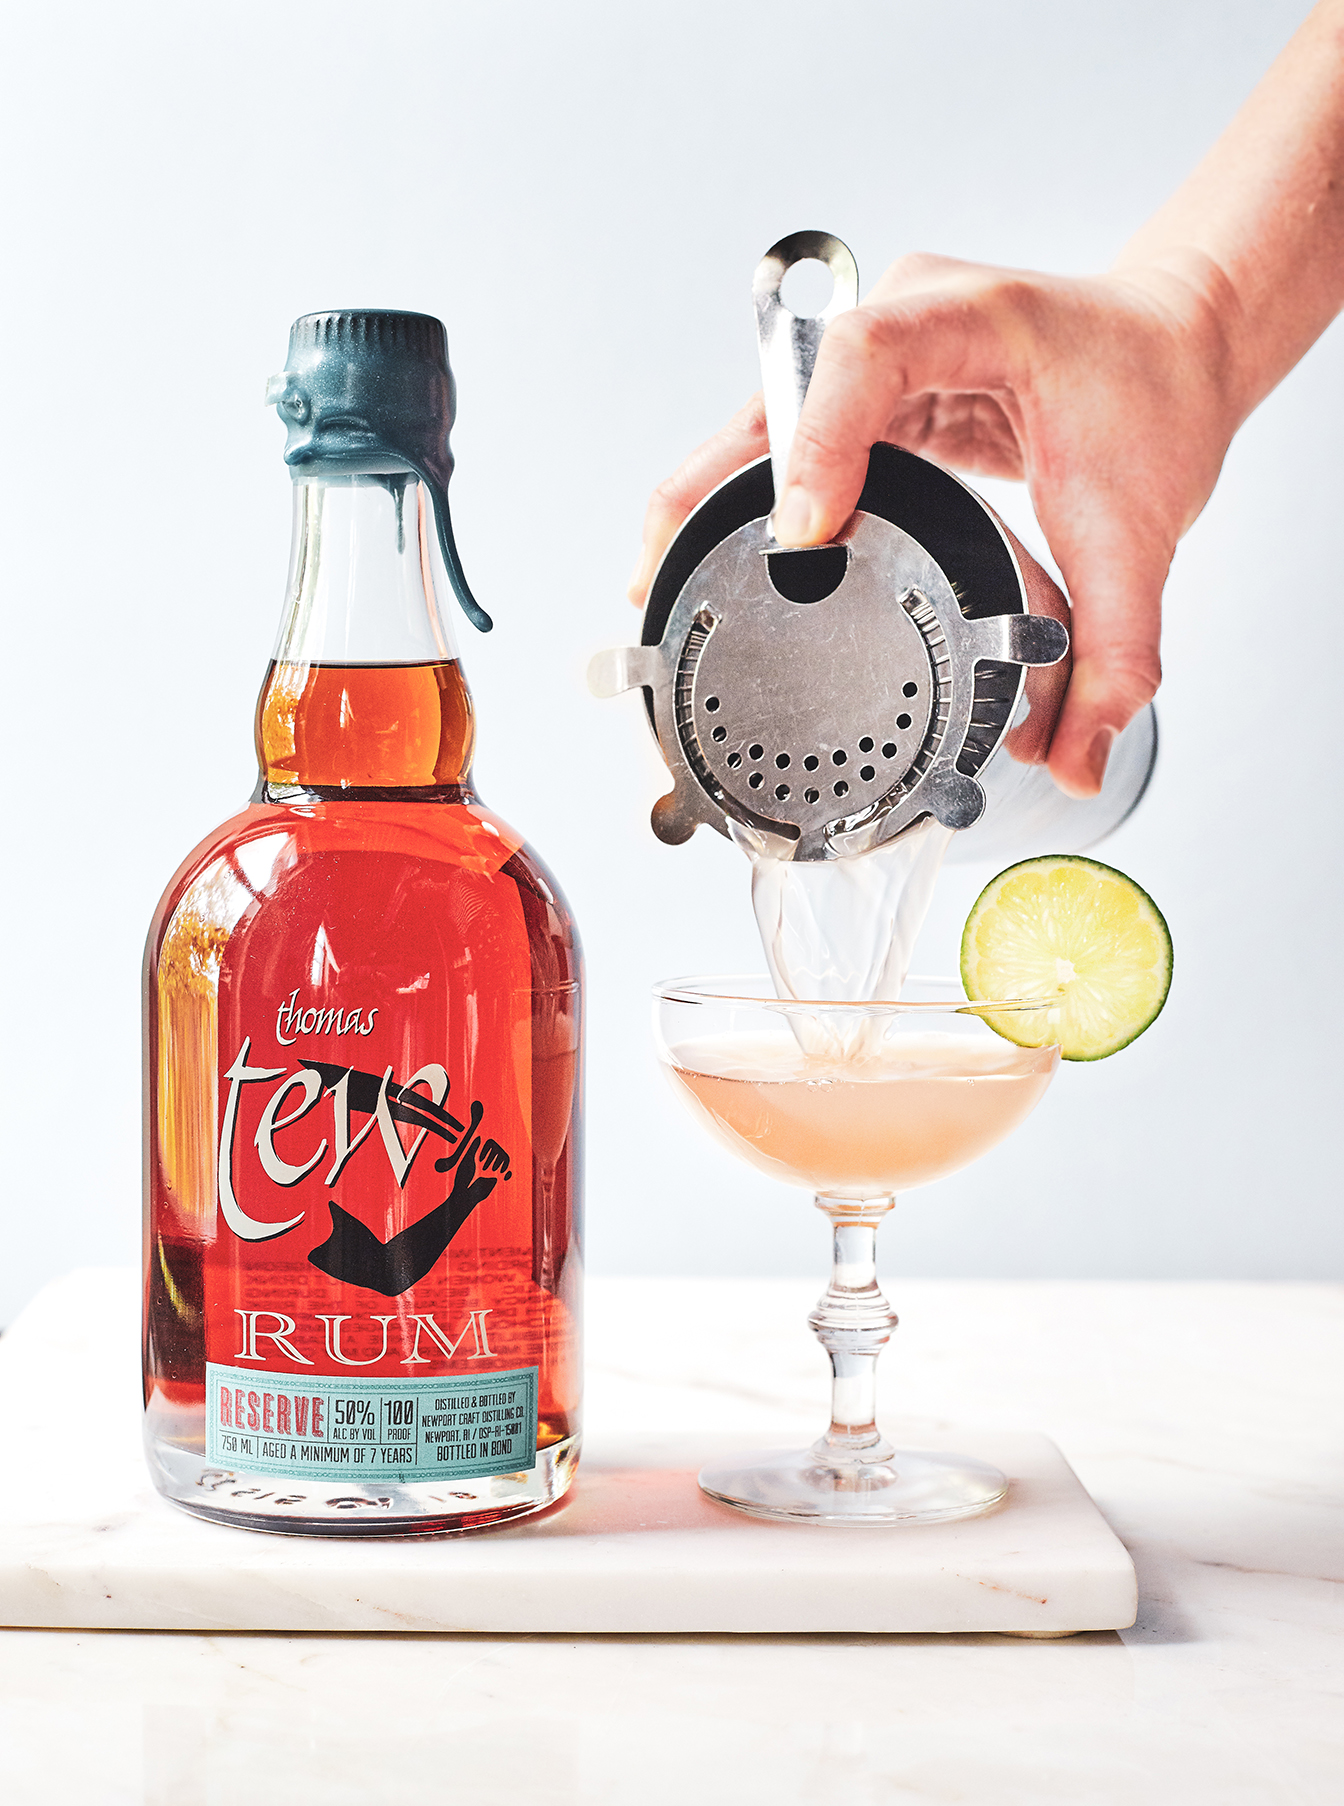 Newport Daiquiri  - spin on a classic daiquiri with  Newport Craft Thomas Tew Rum Reserve ,  fresh lime, and honey